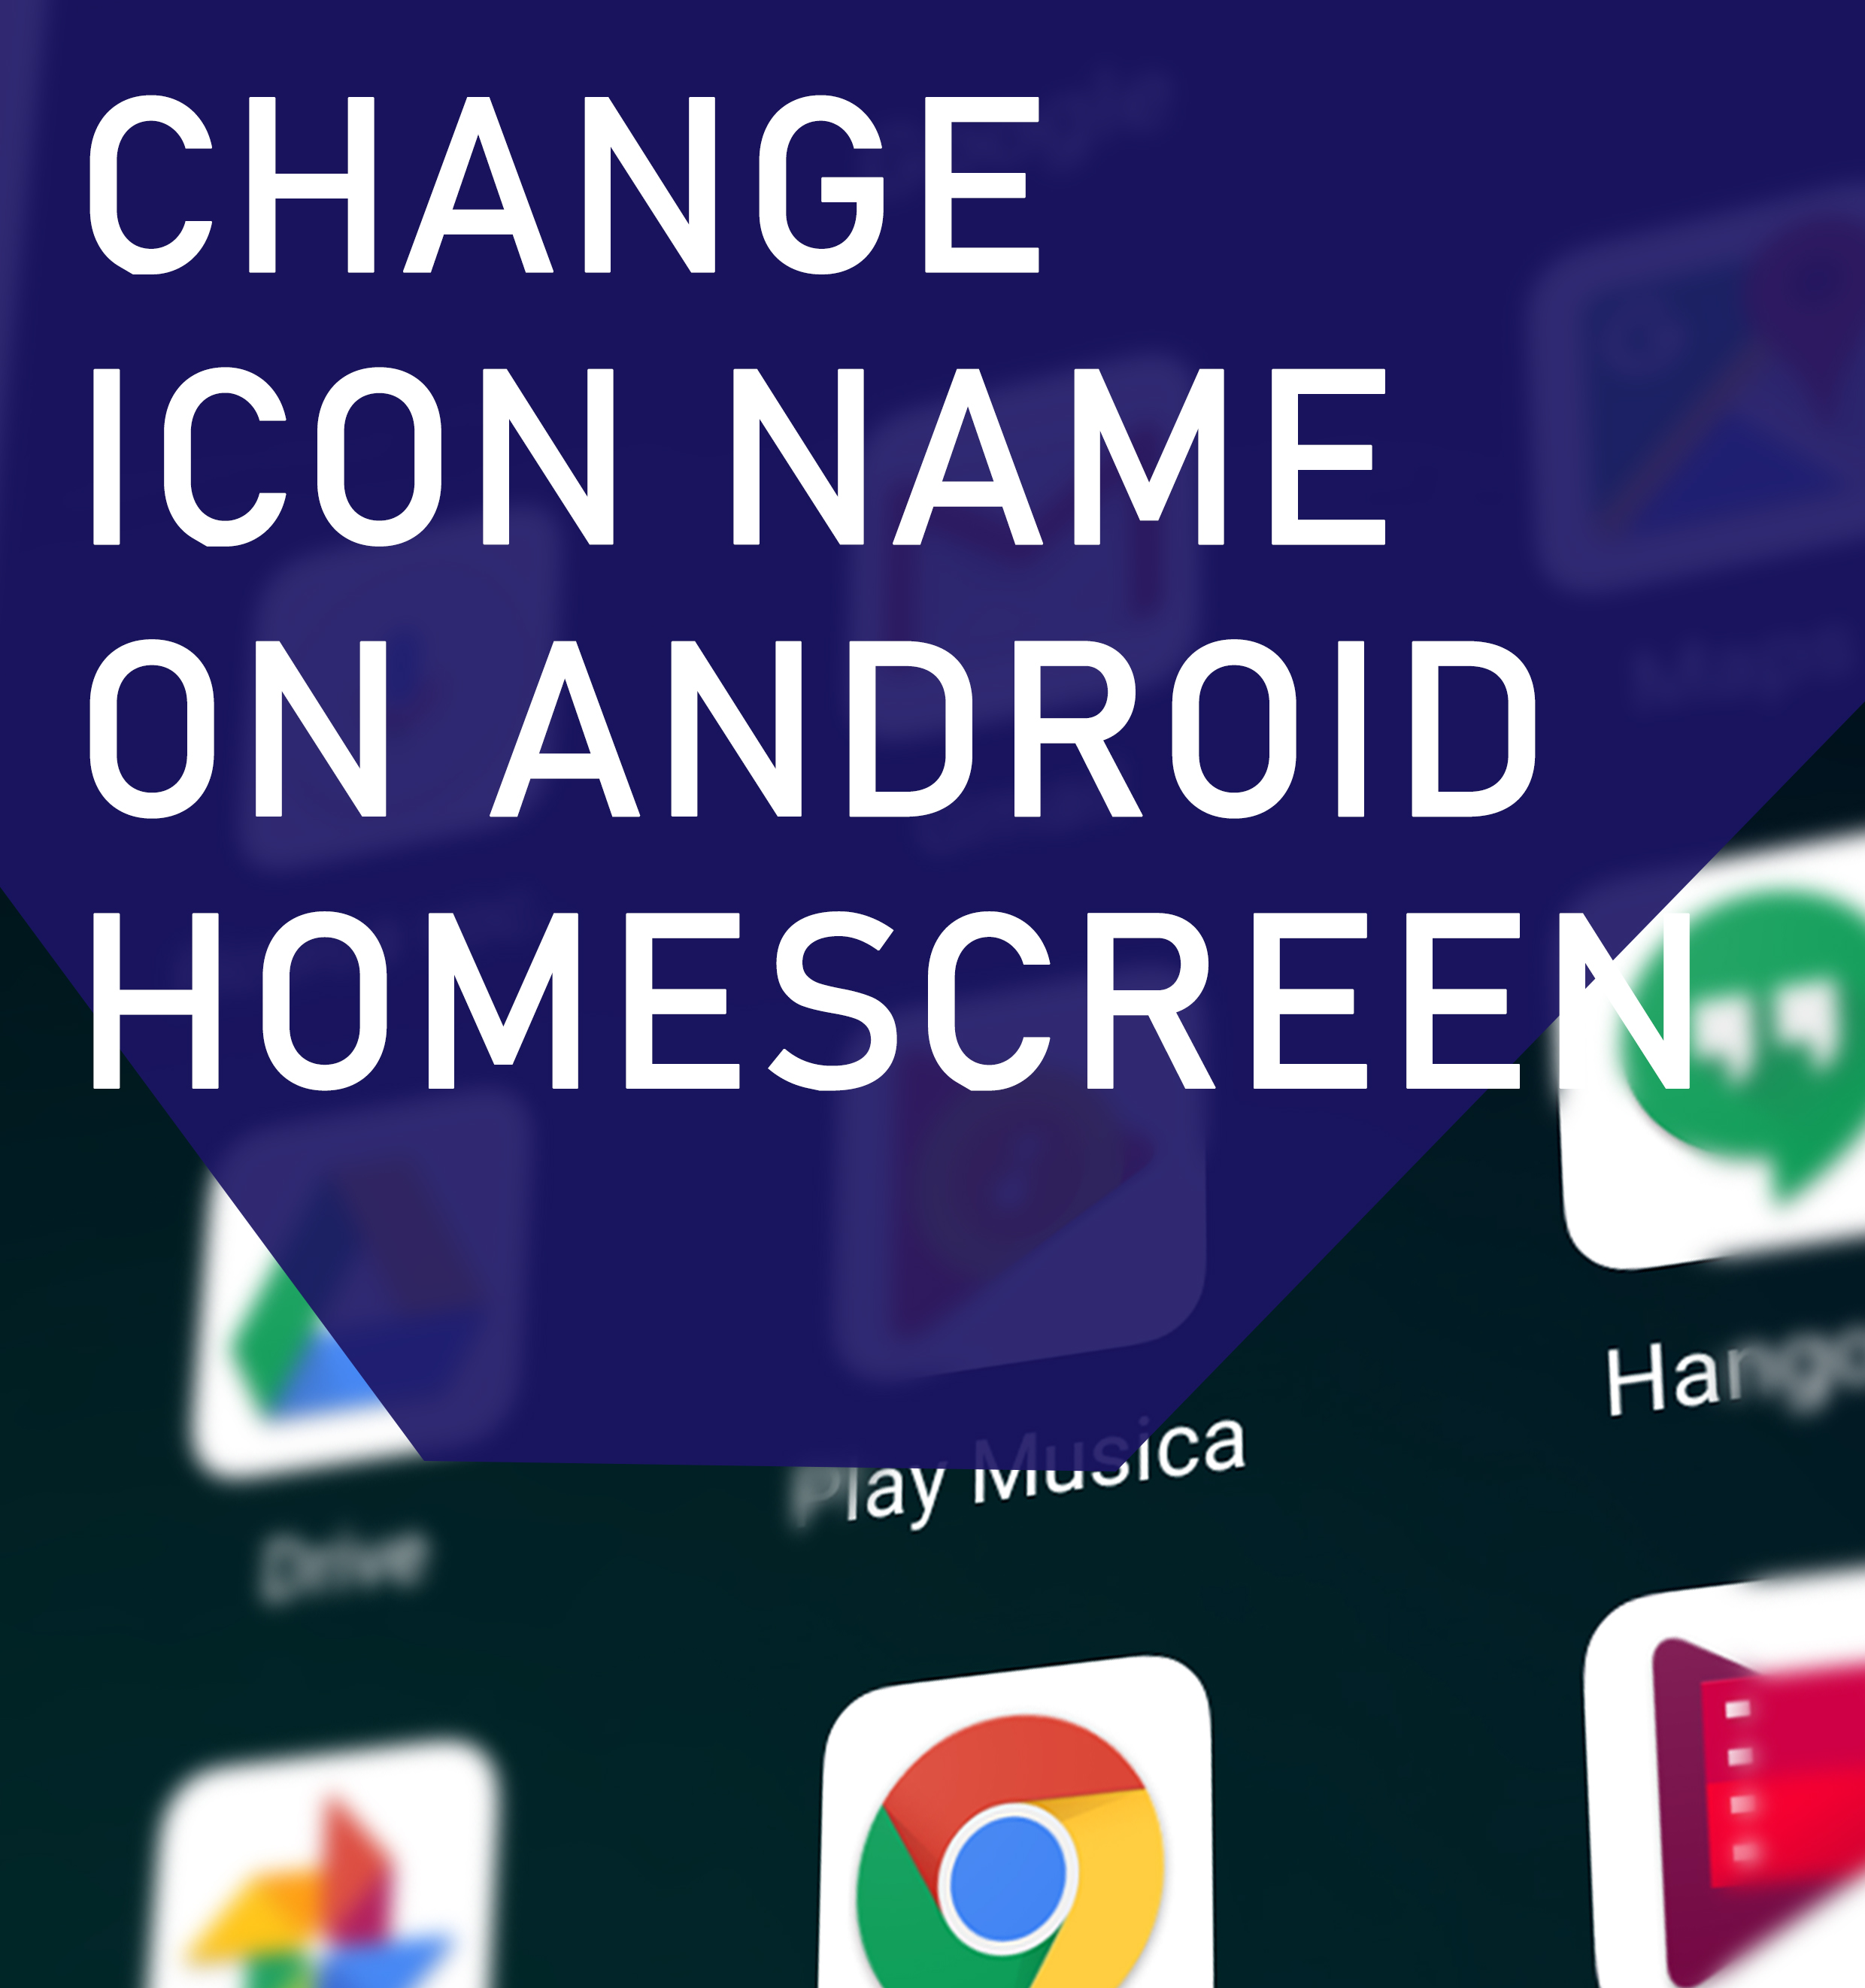 Change Icon Name On Android Homescreen Blinking Switch